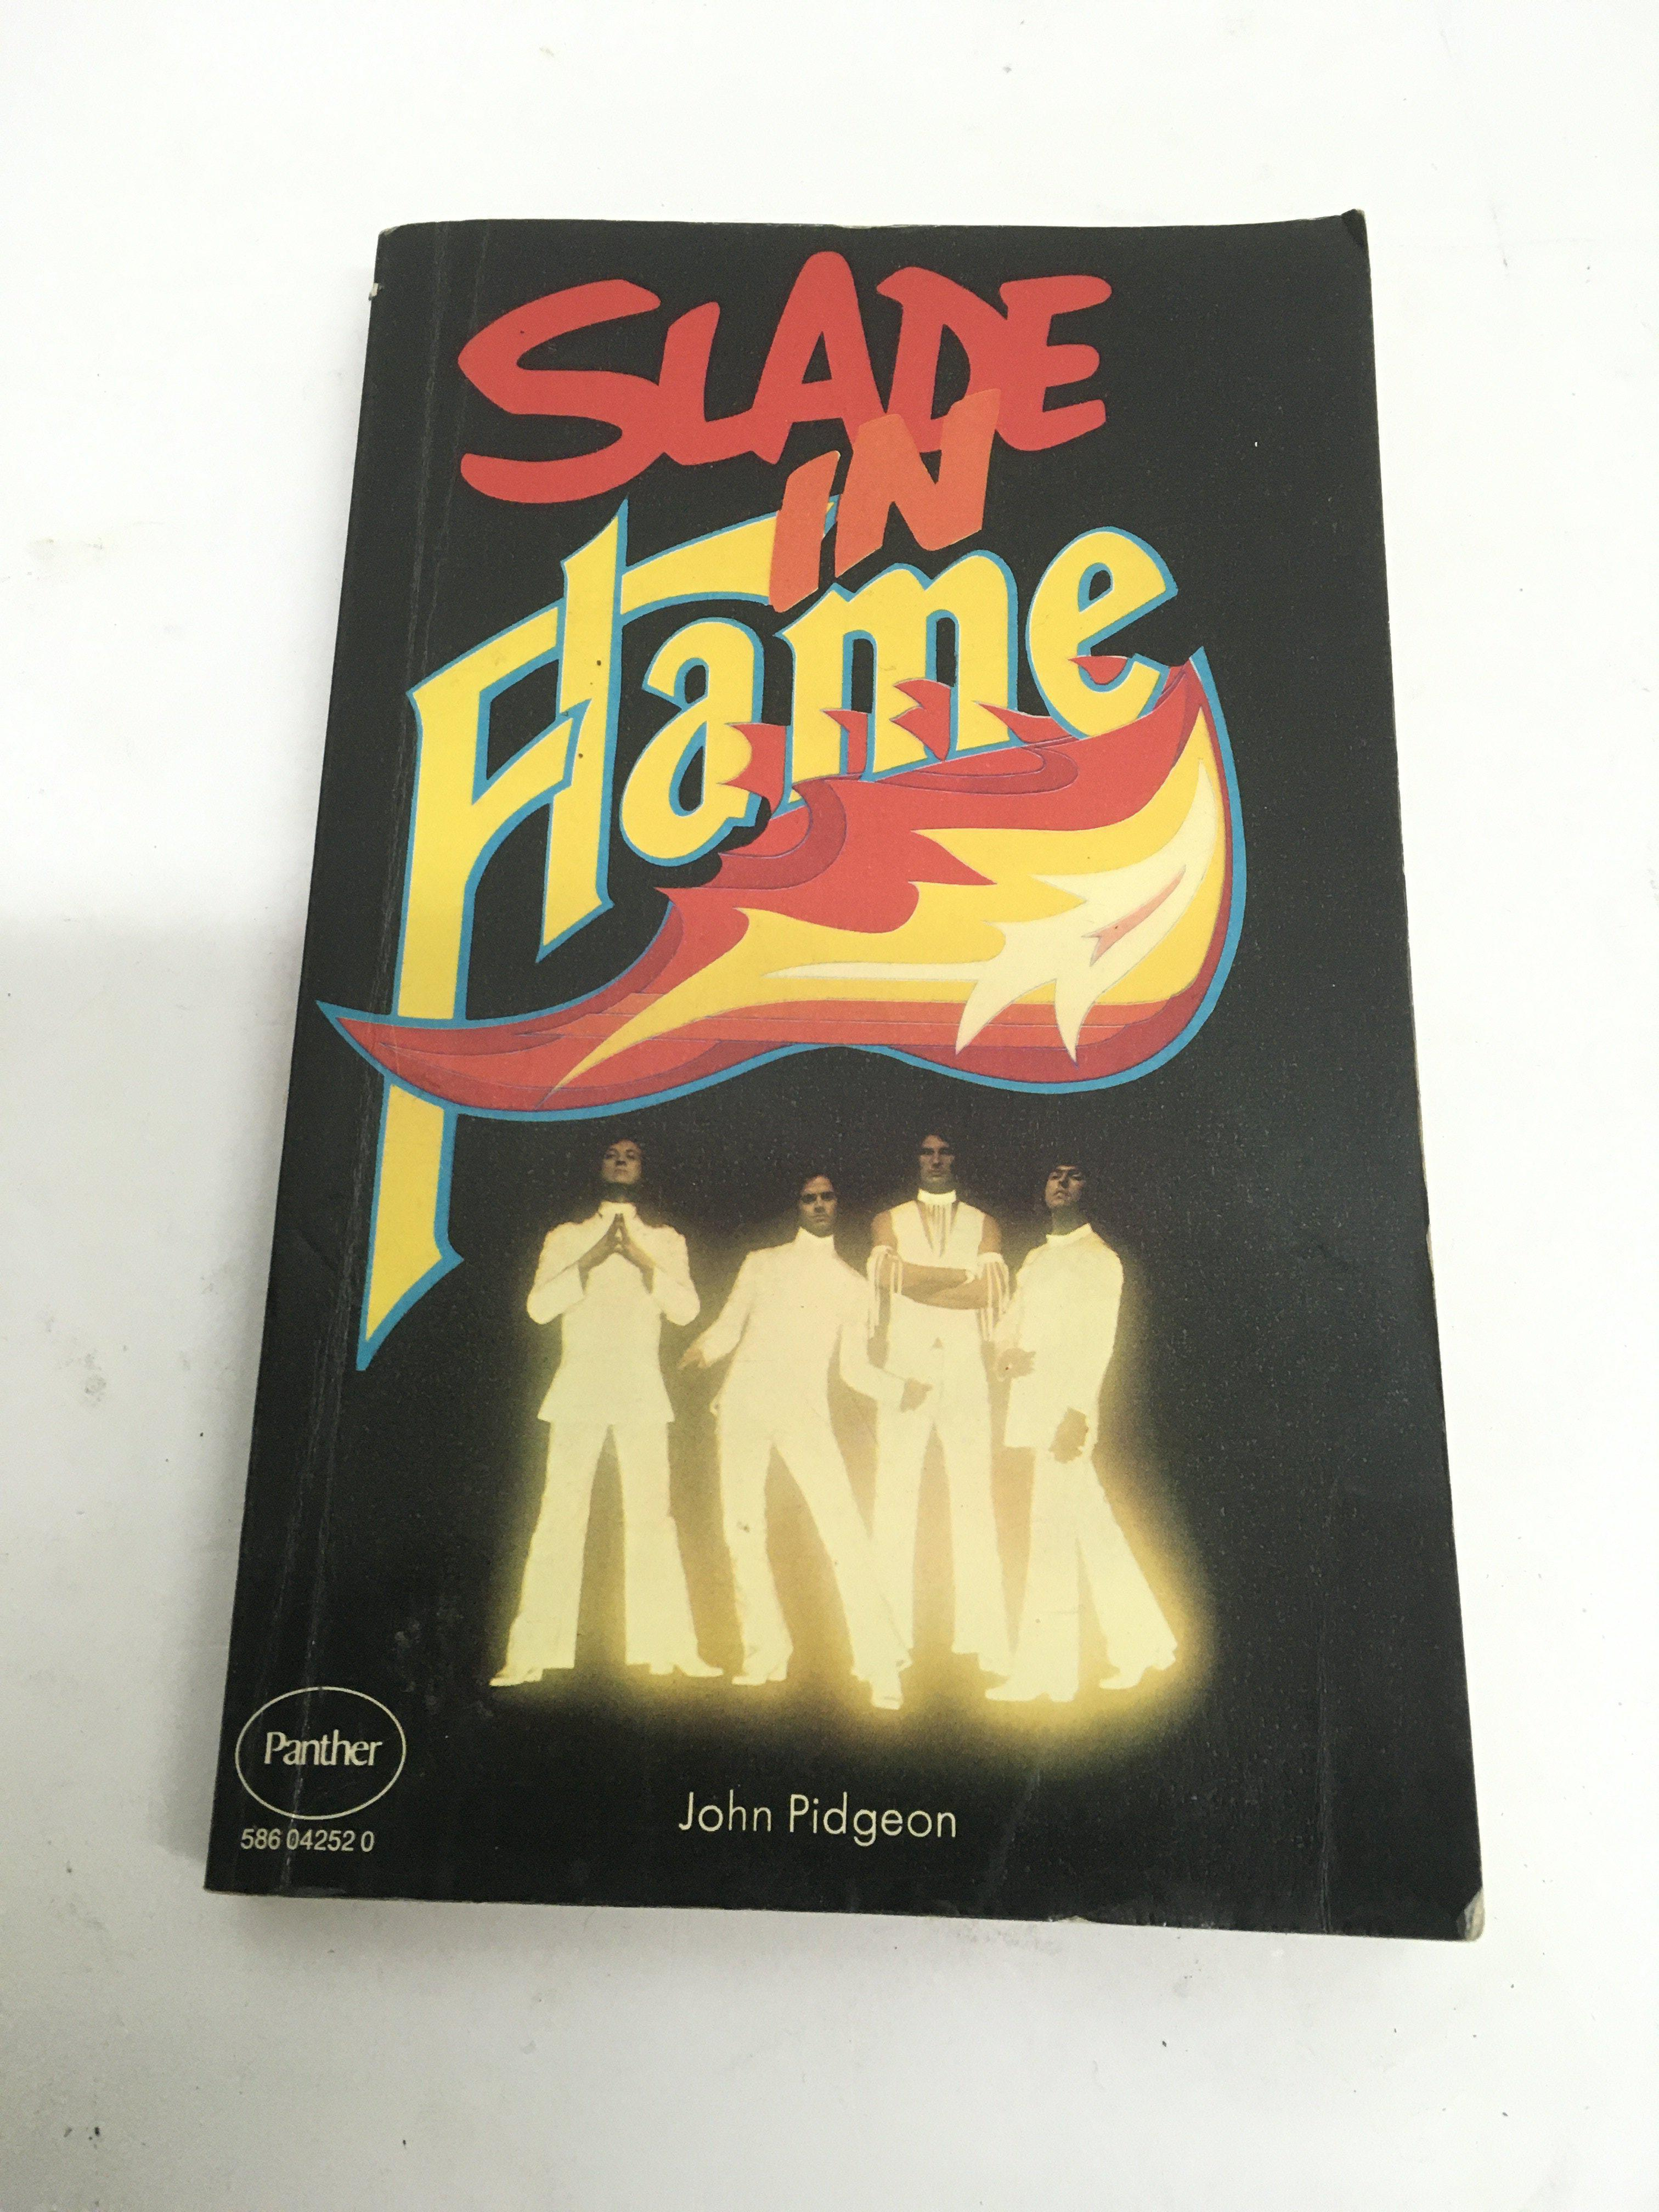 A fully signed 'Slade In Flame' paperback book.